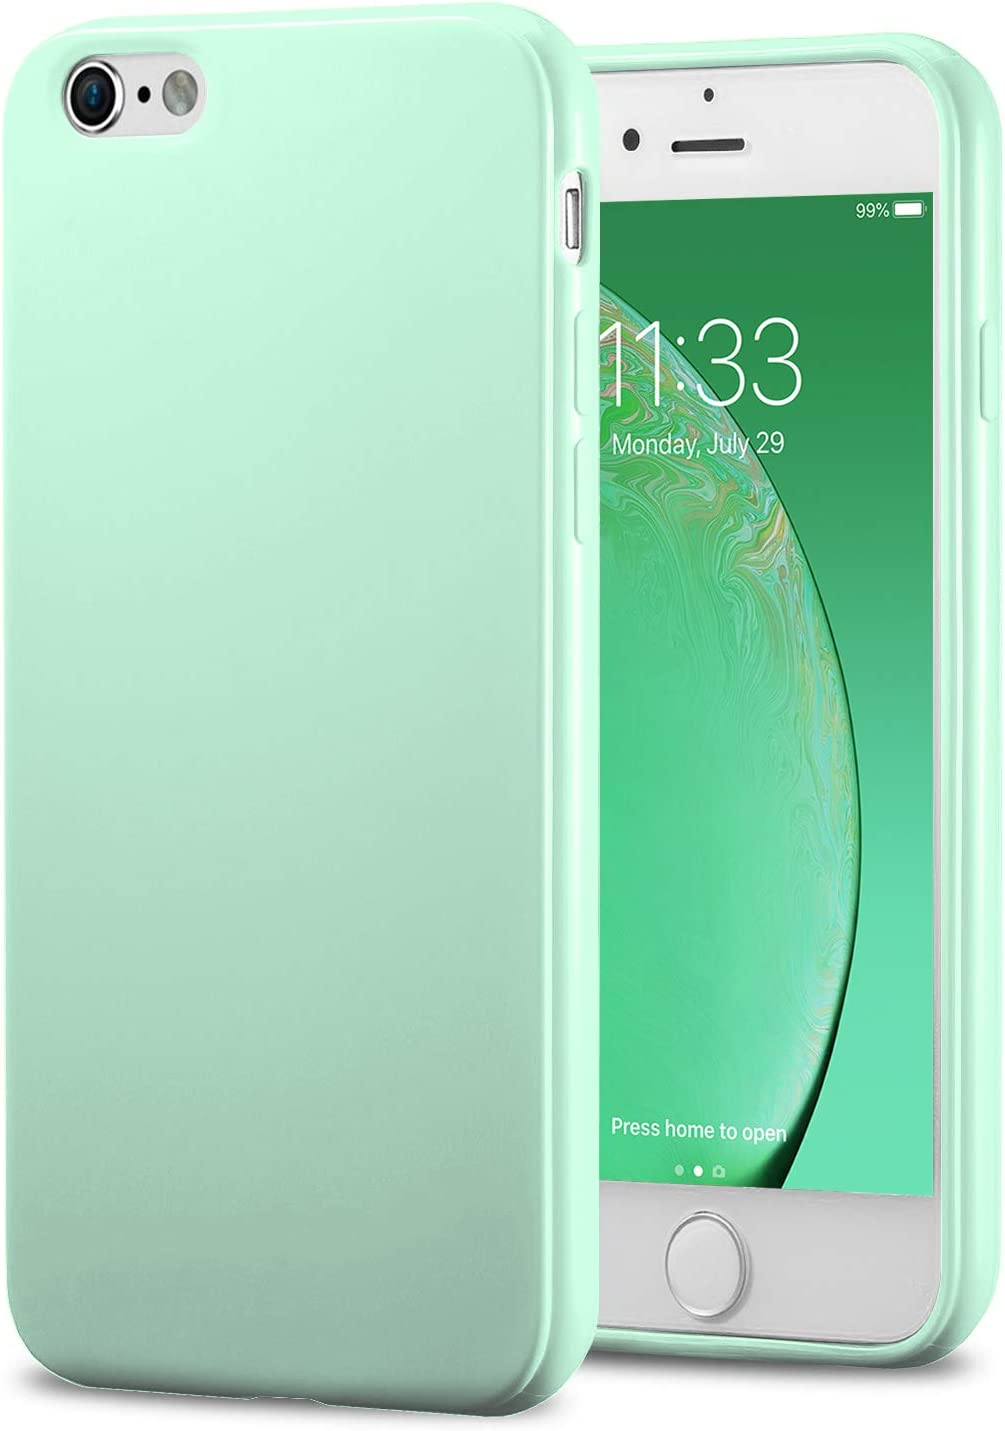 TENOC Phone Case Compatible for Apple iPhone 6S and iPhone 6 4.7 Inch, Slim Fit Cases Soft TPU Bumper Protective Cover, Glossy Mint